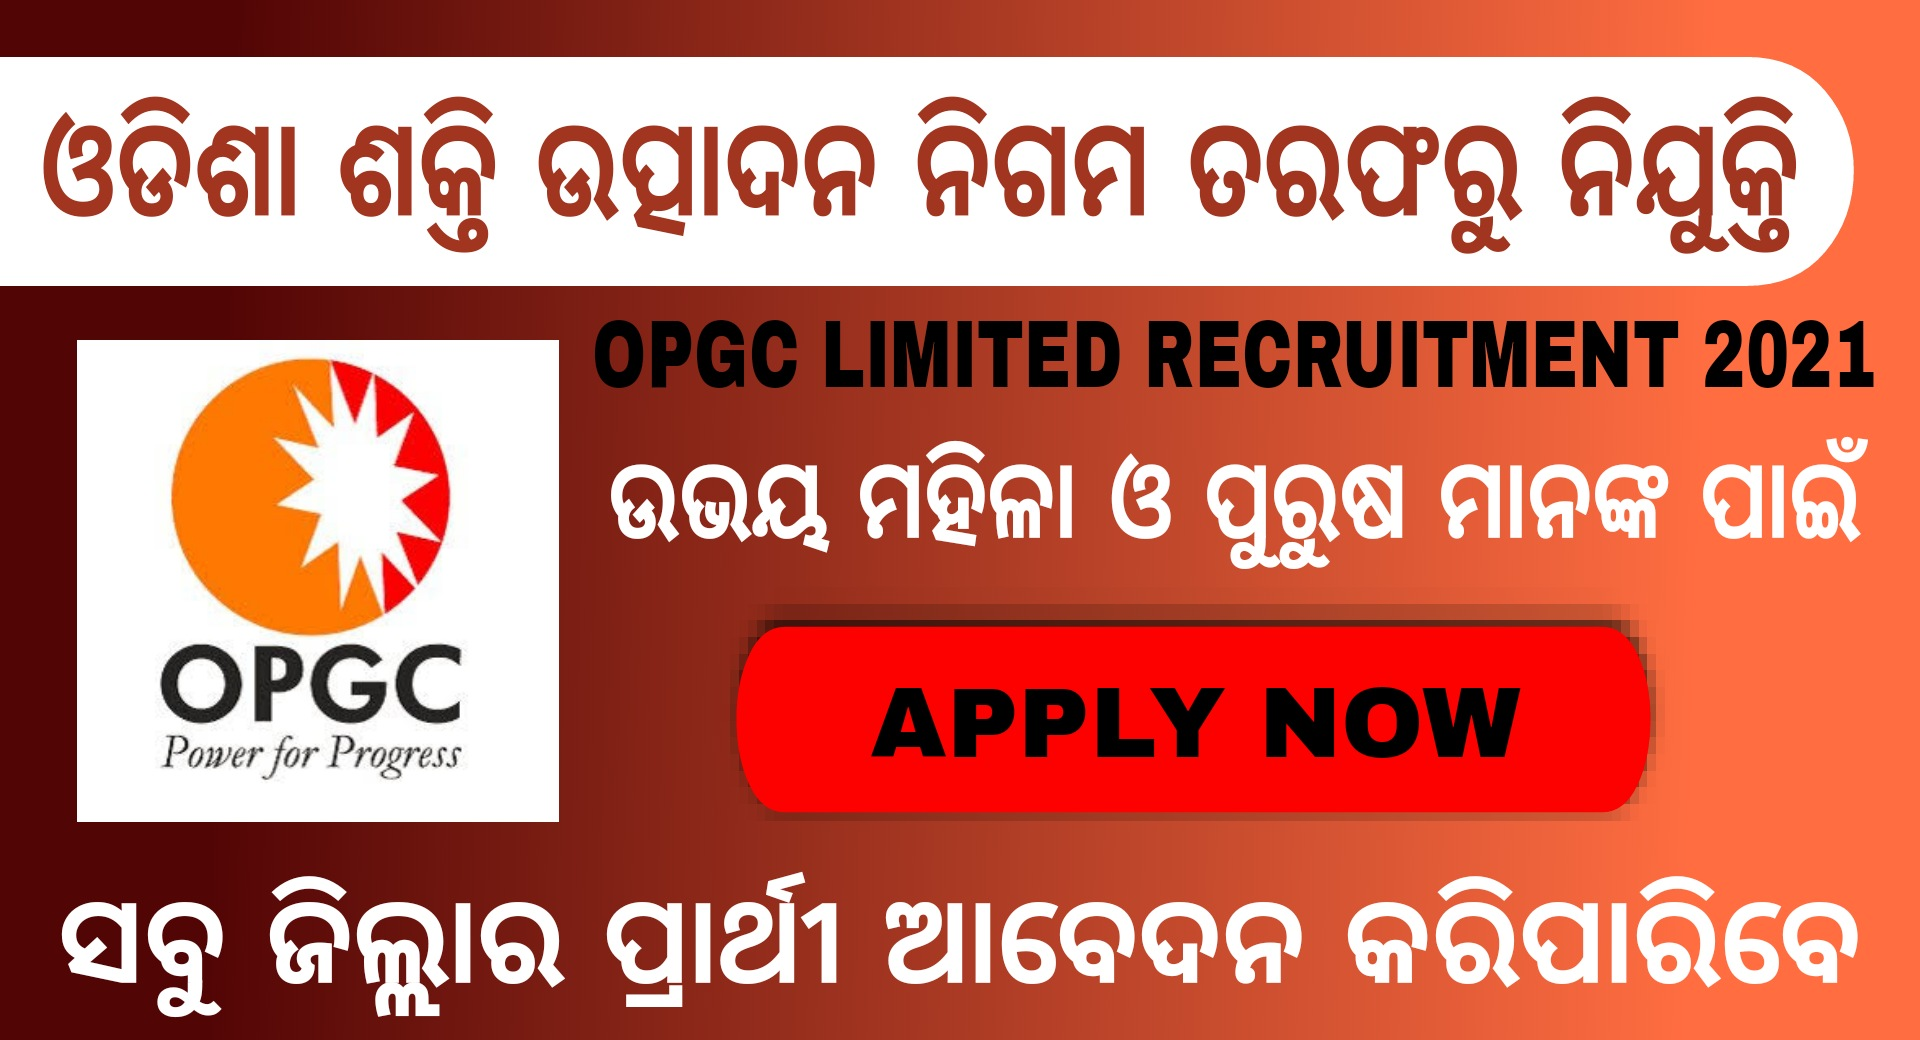 OPGC Limited Recruitment 2021 – Jobs in Odisha